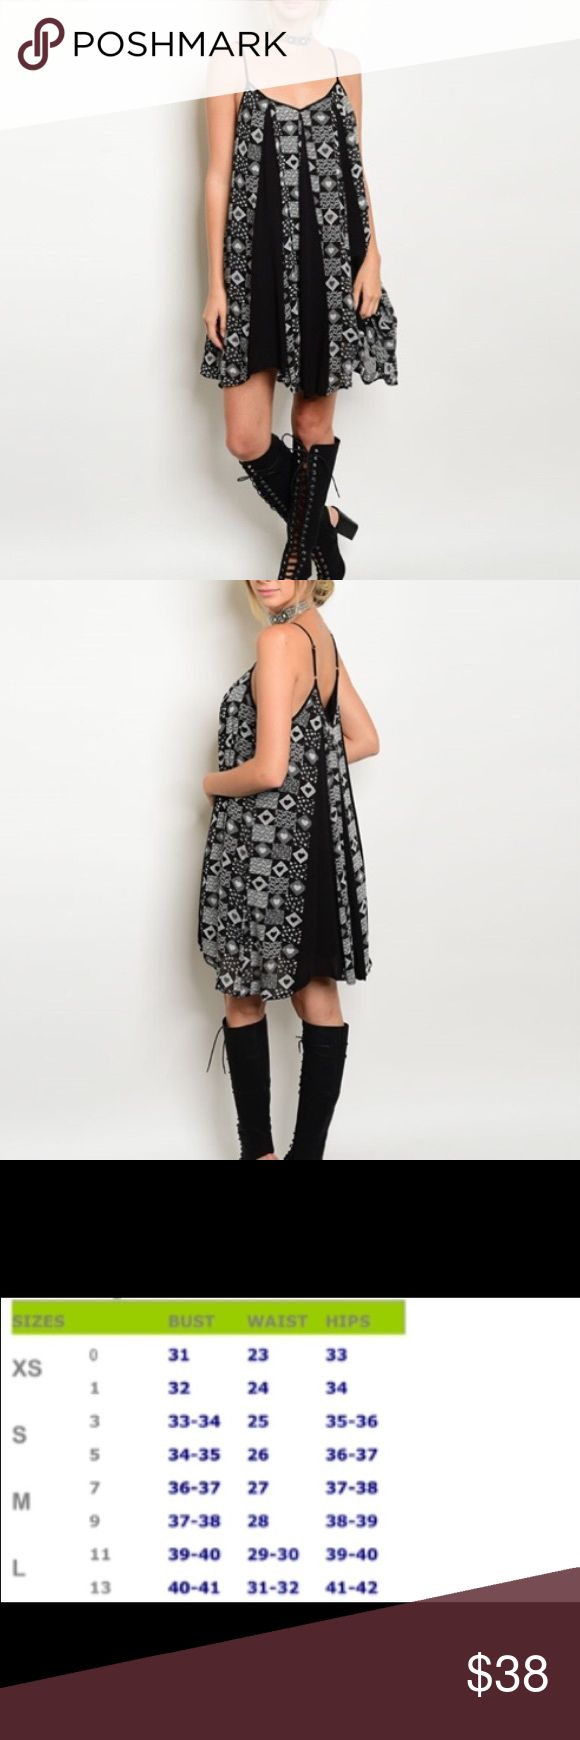 🆕 Black & White Tribal Dress Nice Boho chic piece to have for festival. Black & white tribal dress is a perfect add to the boho wardrobe. Material:  100% rayon.  Price is firm unless bundled.  😊 Dresses